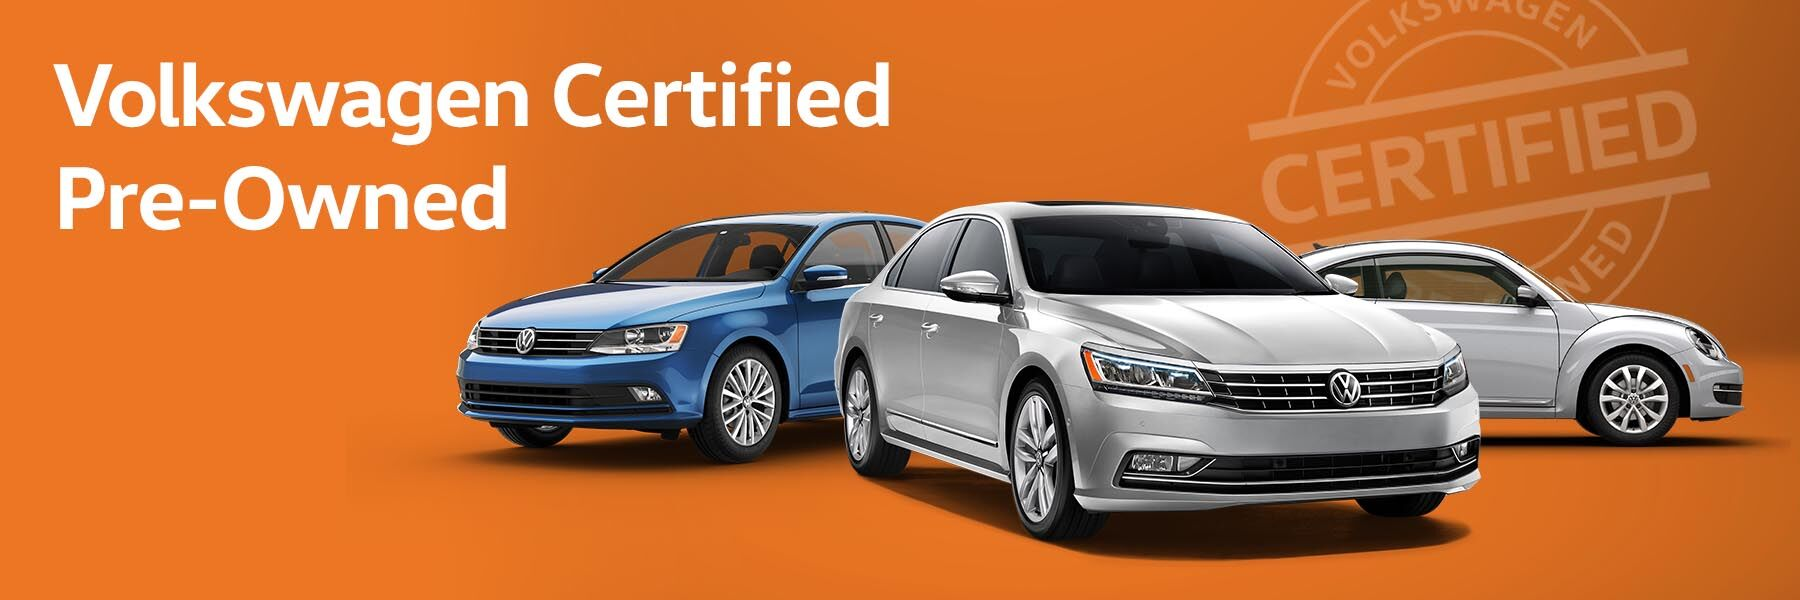 Volkswagen Certified Pre-Owned in Schaumburg, IL